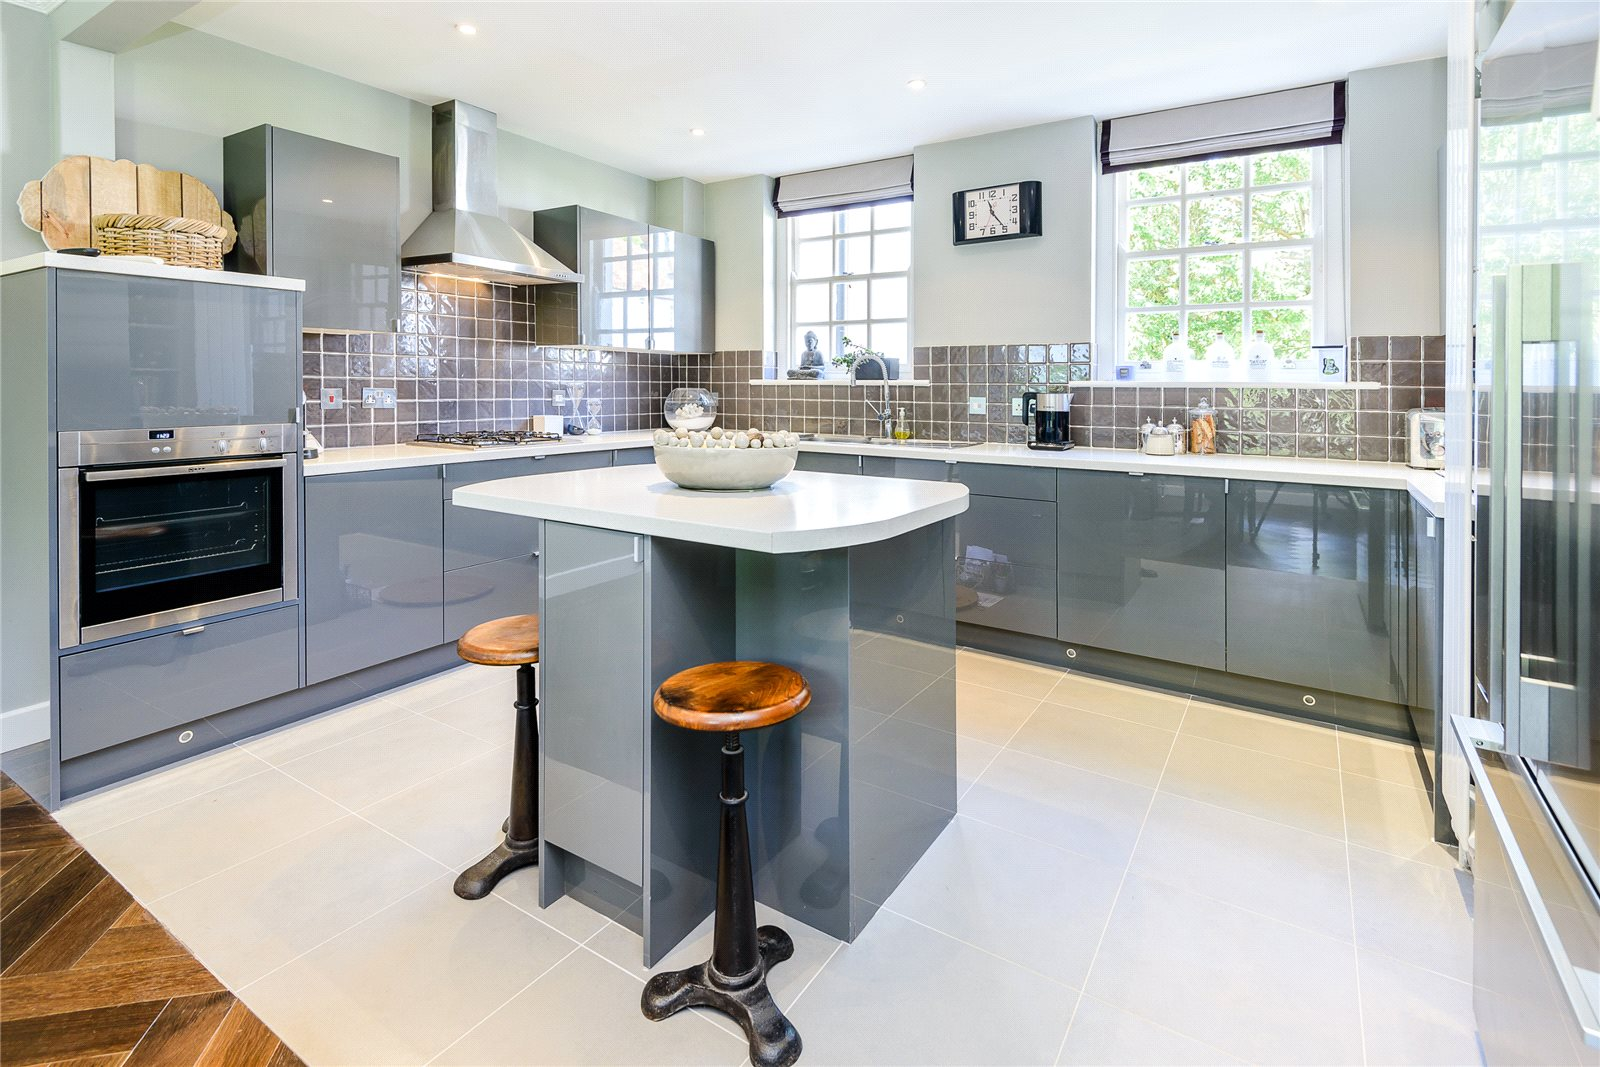 Additional photo for property listing at Winkfield Lane, Winkfield, Berkshire, SL4 Winkfield, イギリス